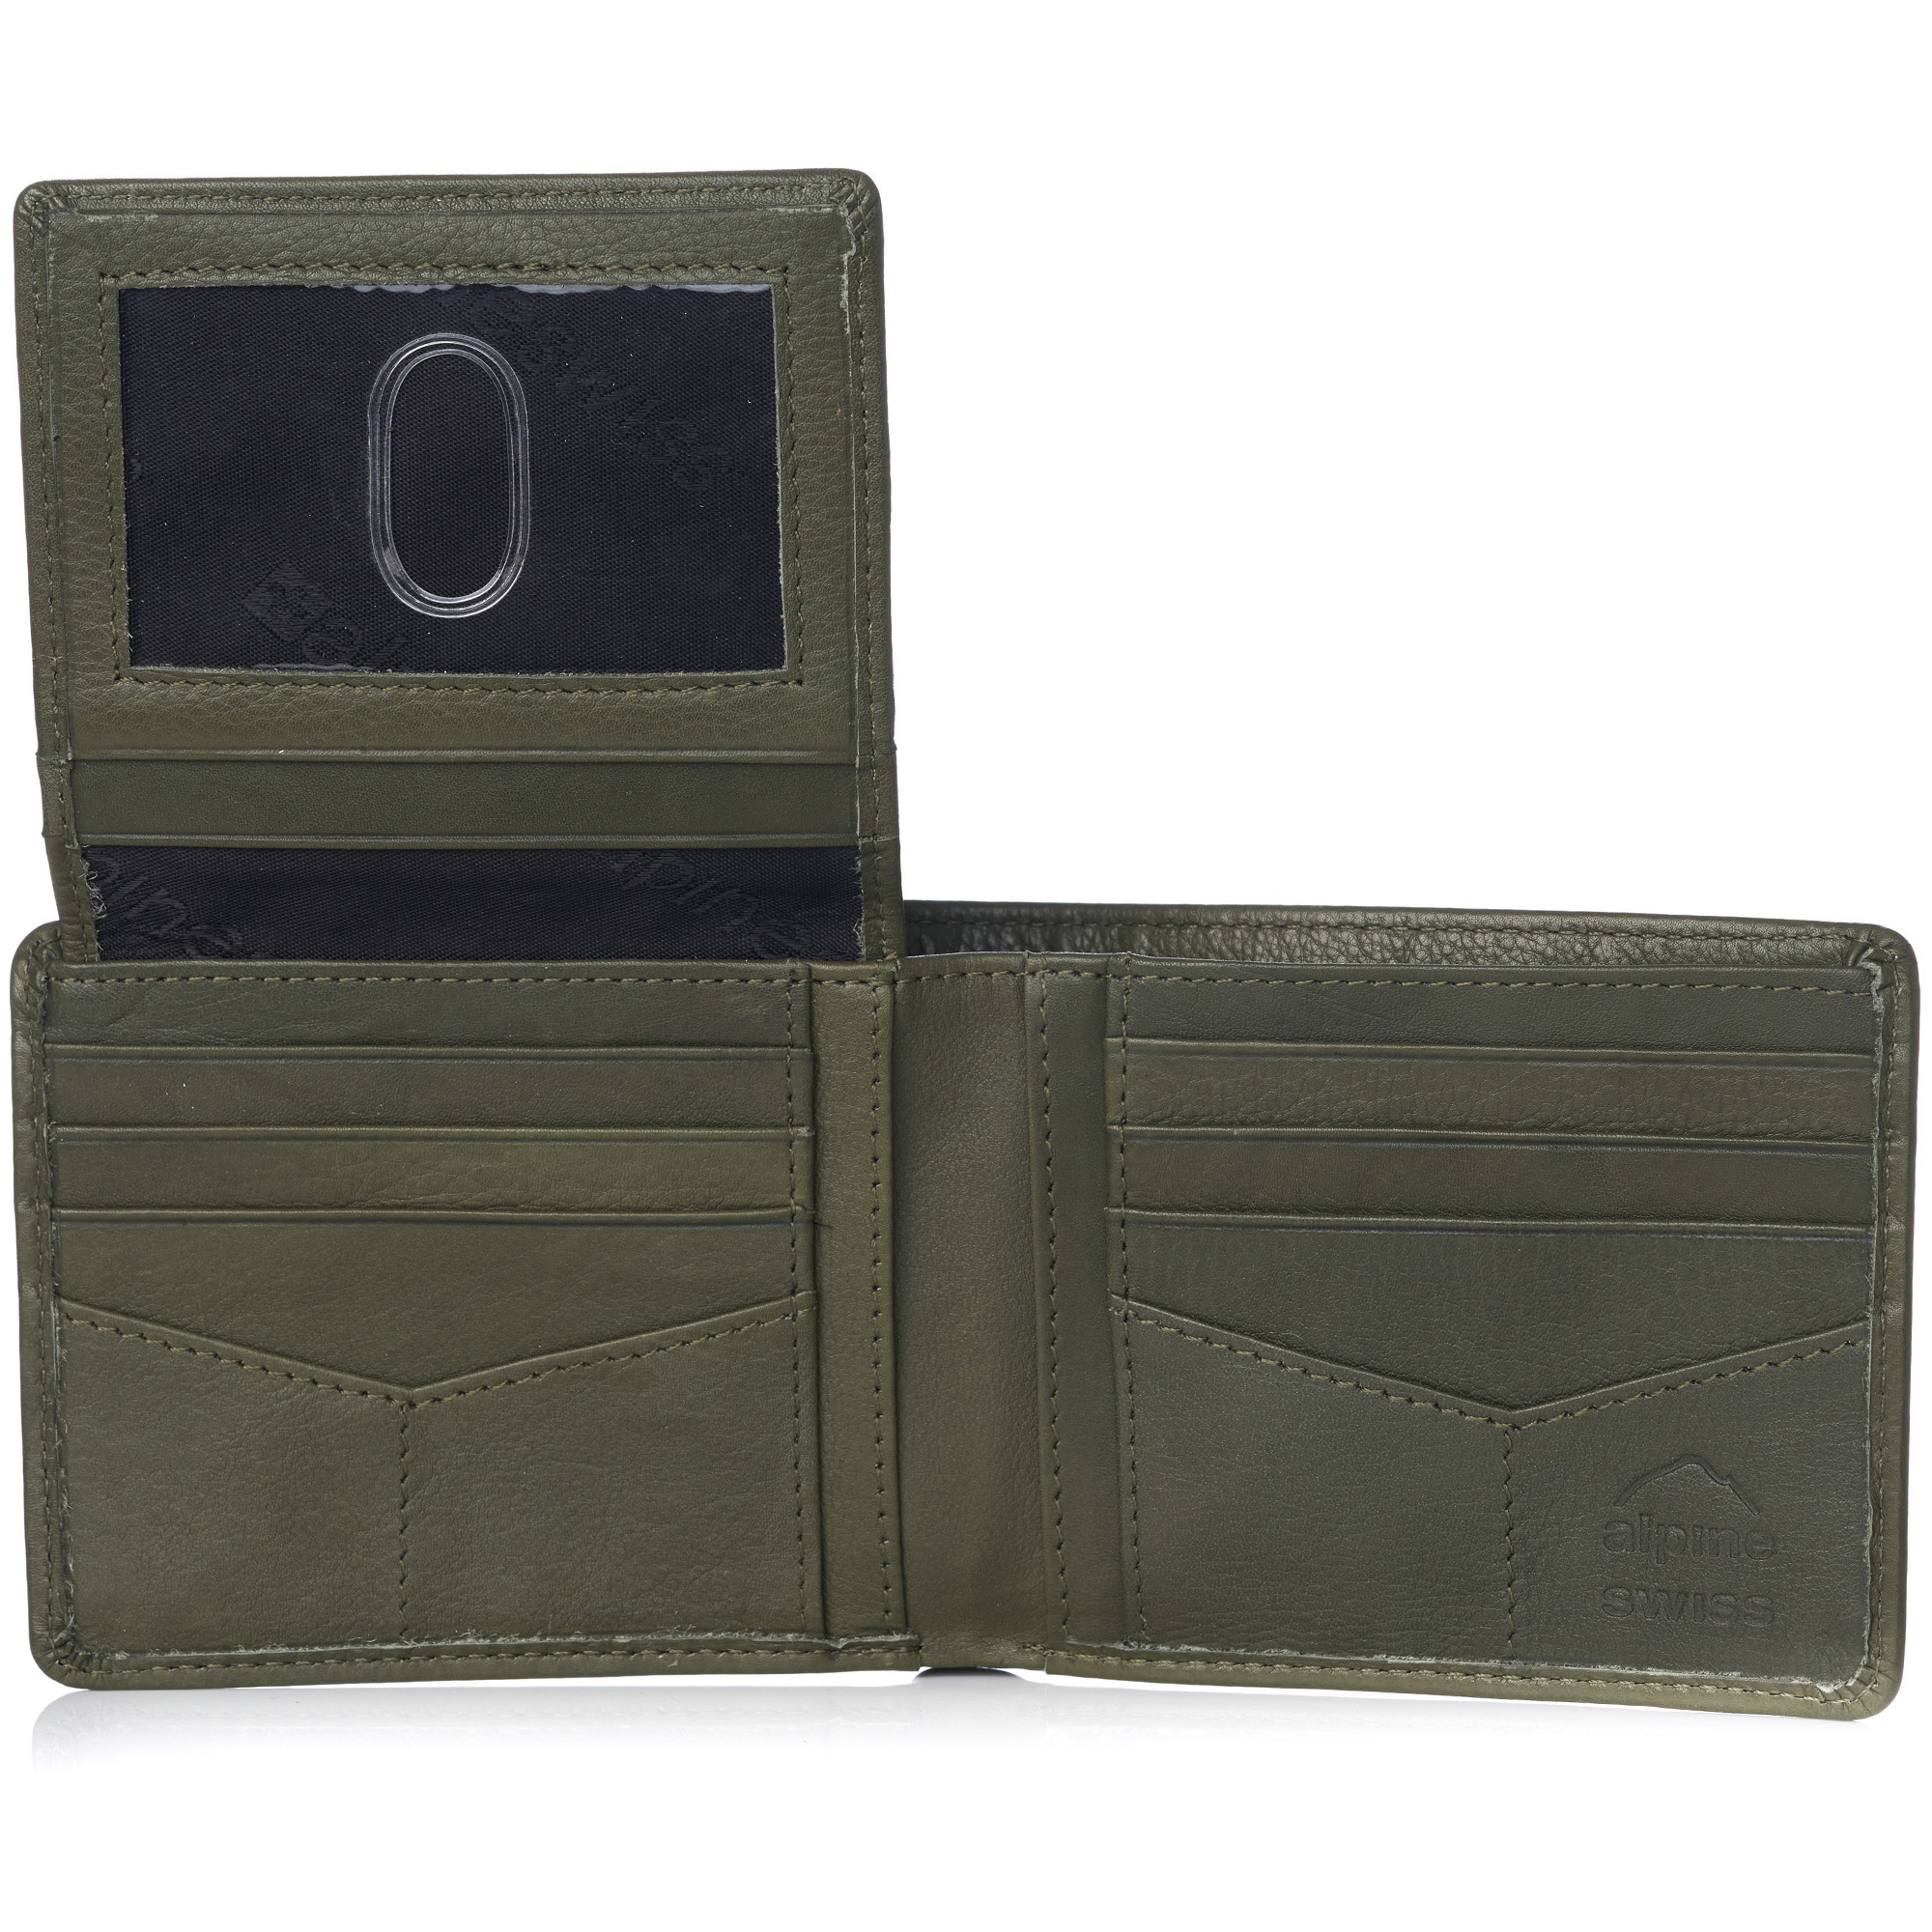 miniature 114 - Alpine-Swiss-RFID-Mens-Wallet-Deluxe-Capacity-Passcase-Bifold-Two-Bill-Sections